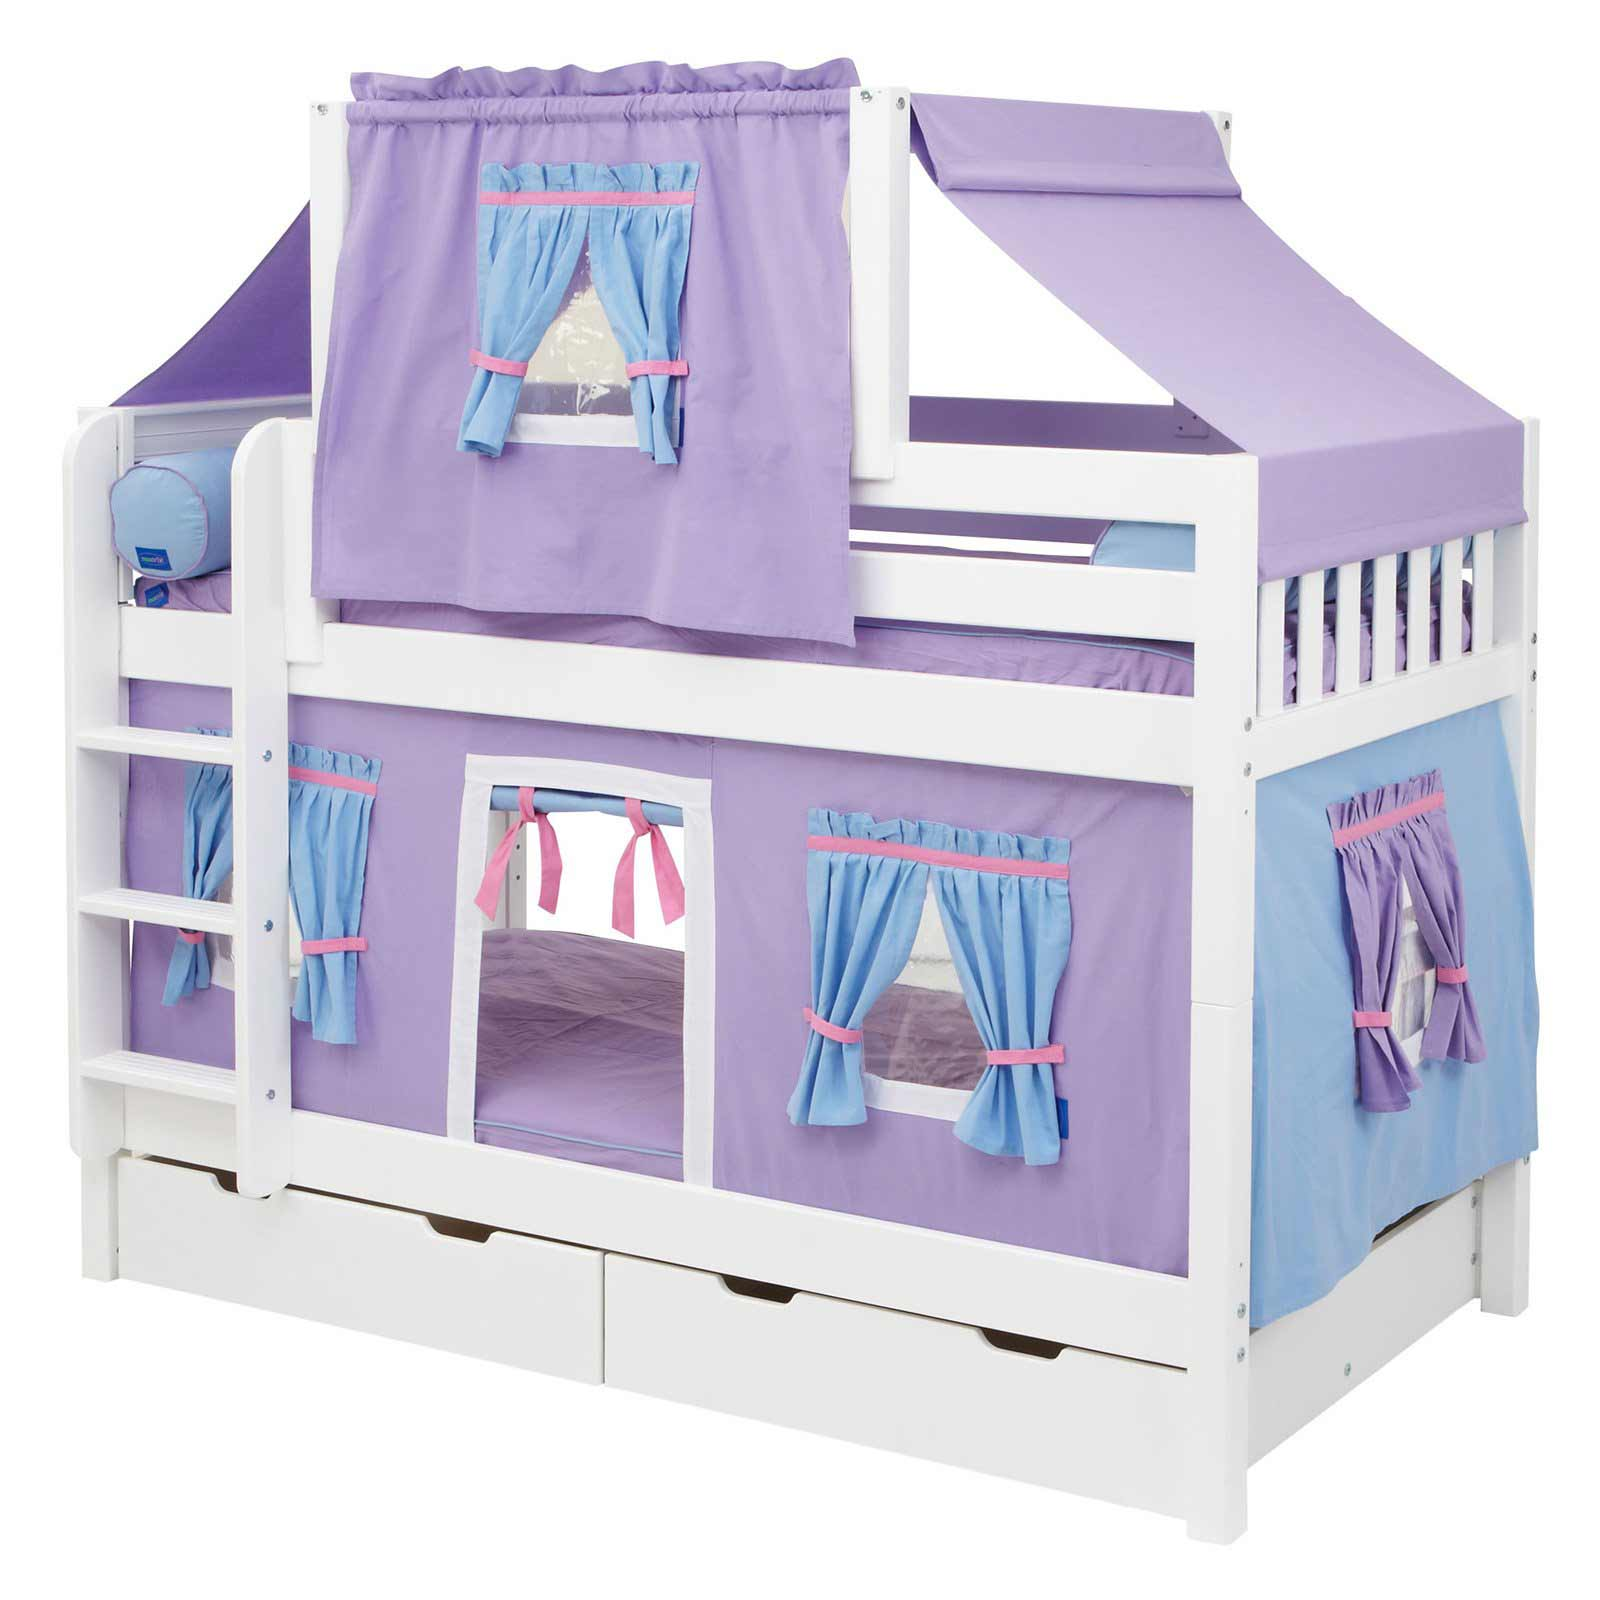 Purple Bunk Bed With Twin Deluxe Tent